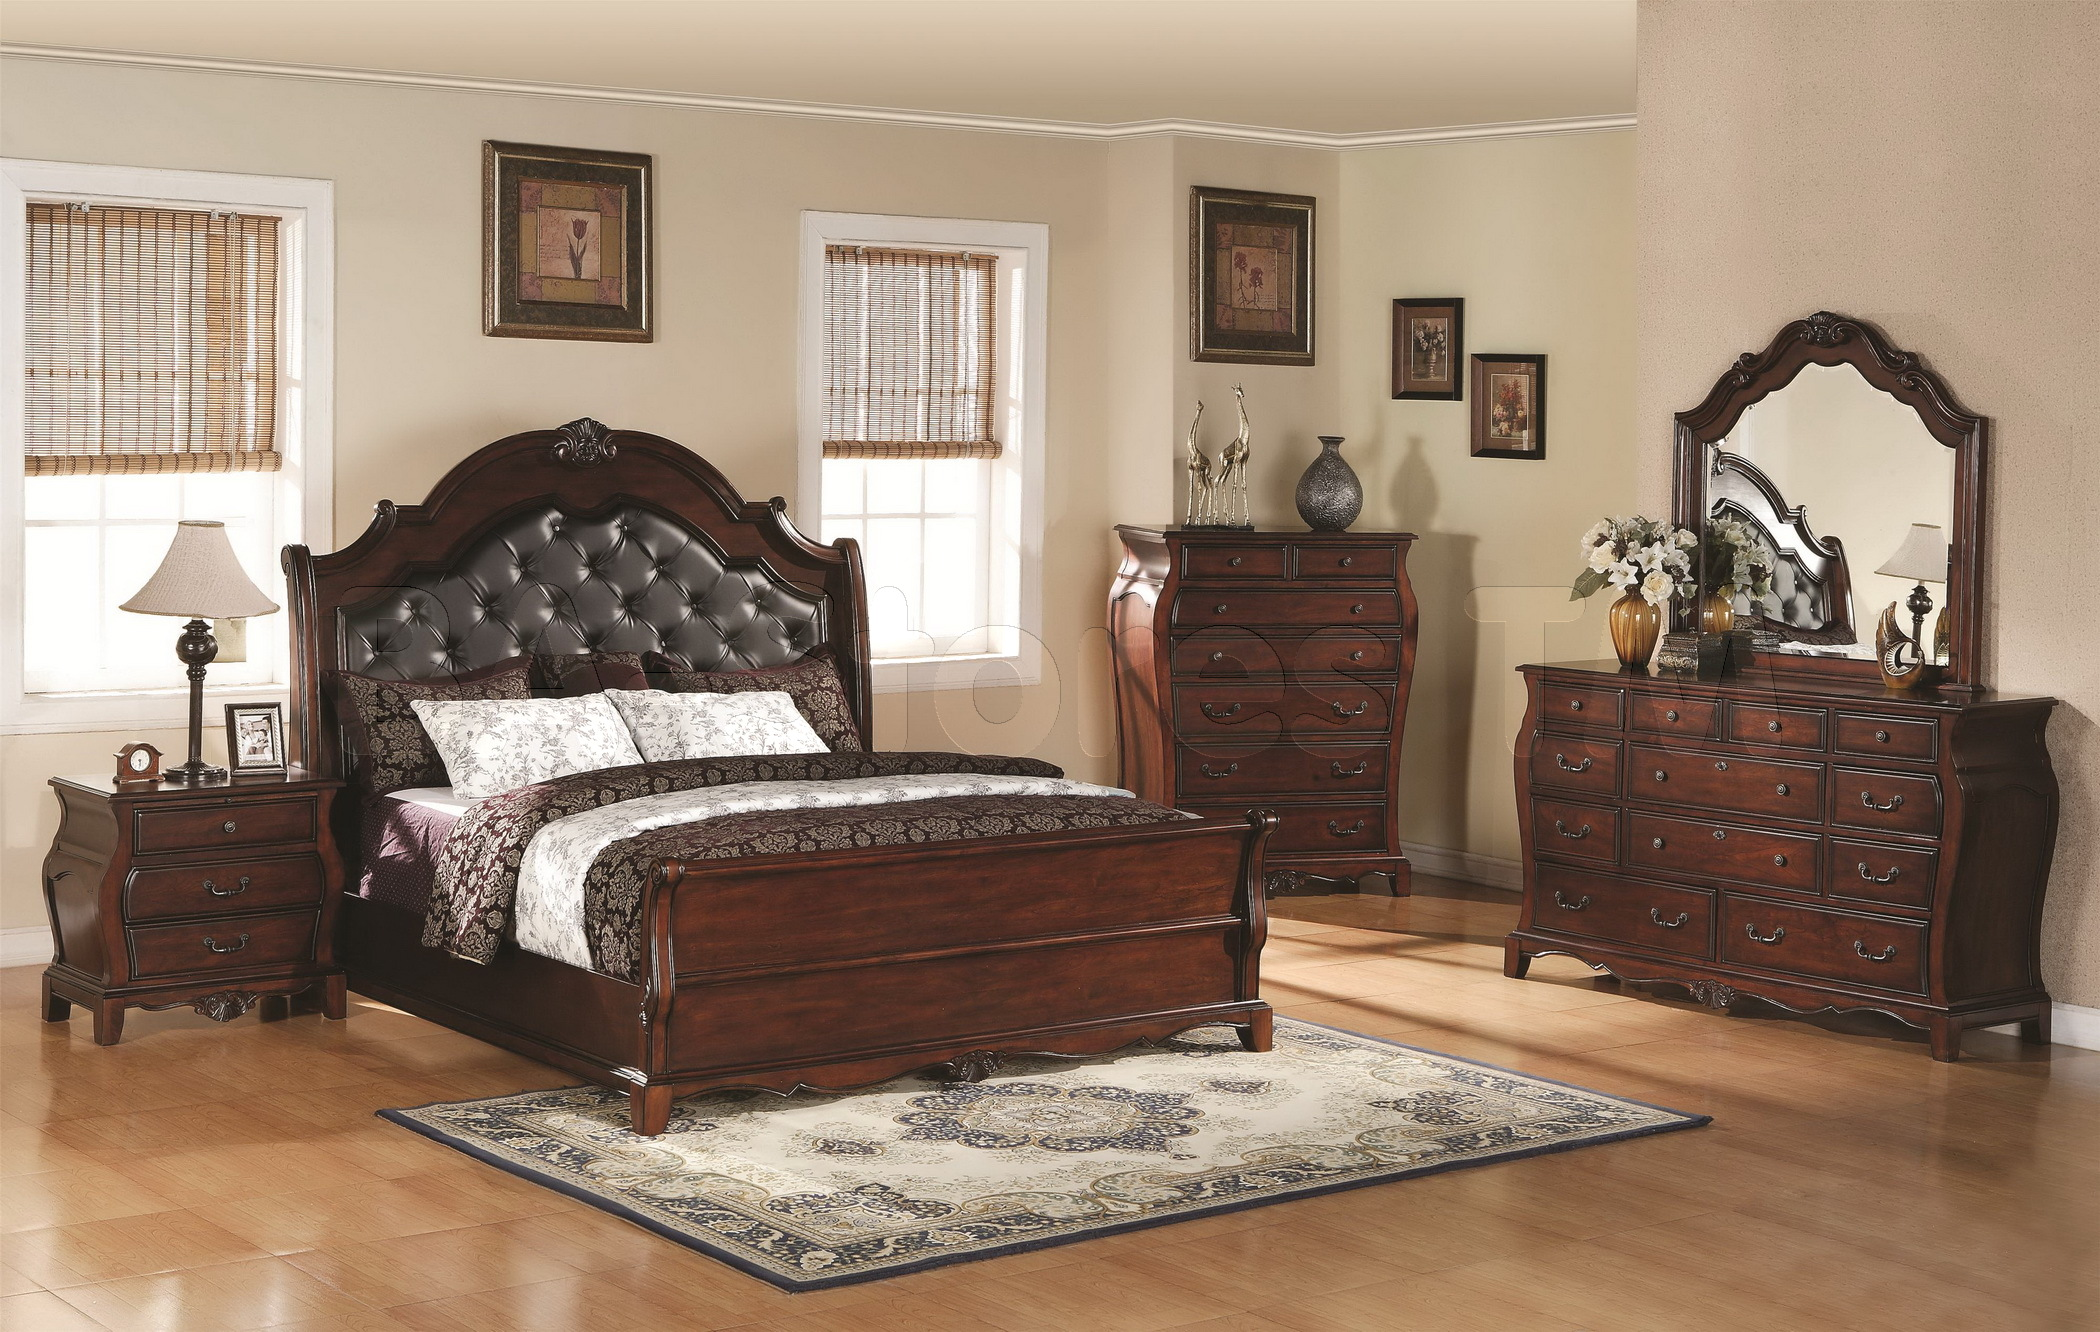 traditional designer bedroom furniture photo - 8